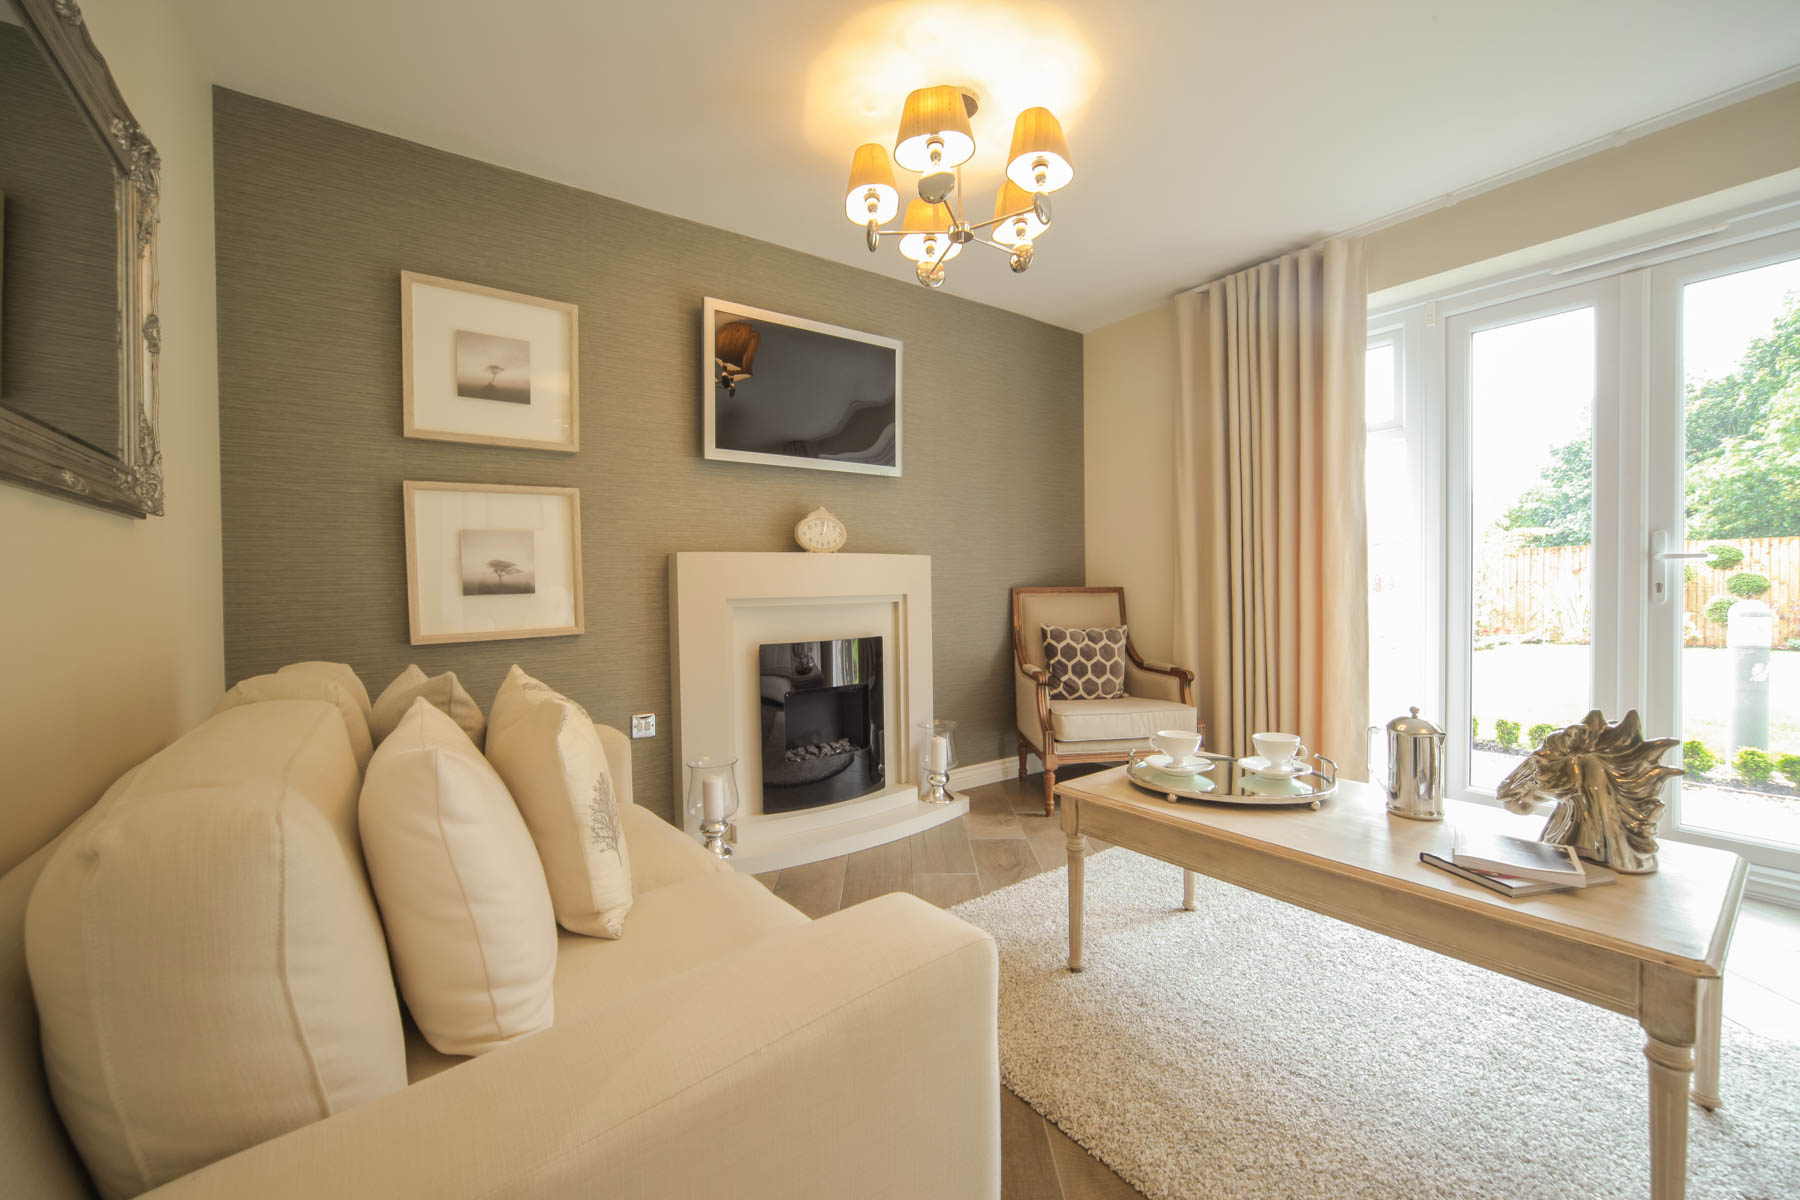 The Alton - Plot 178 | Taylor Wimpey